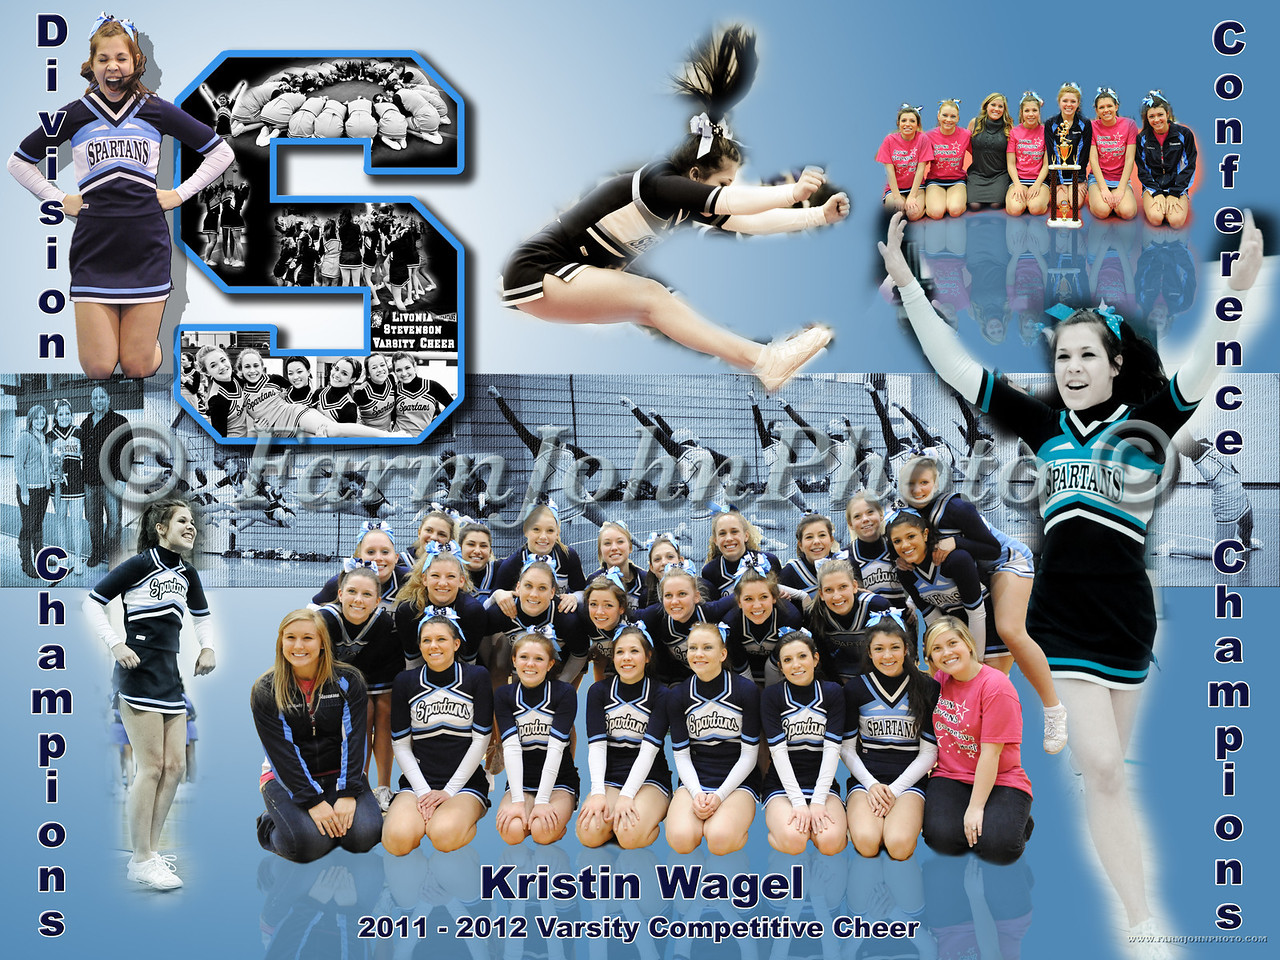 Kristin Wagel 24 x 18 Format Proof 2